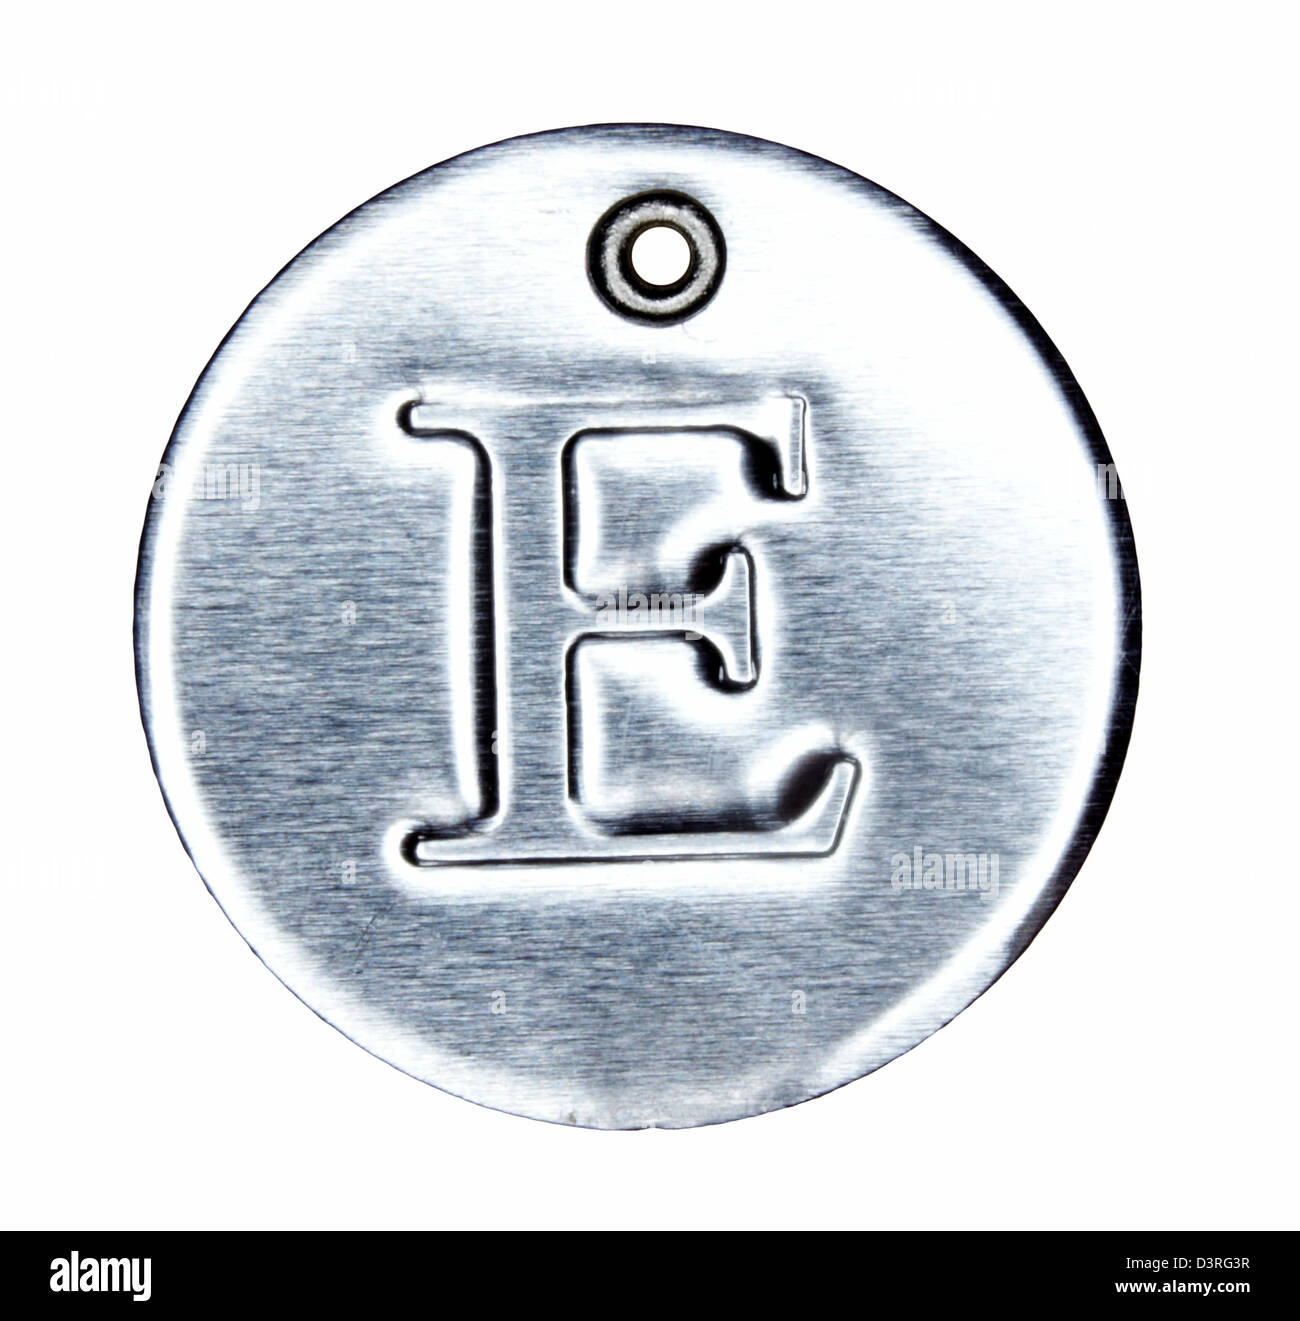 Brushed metal letter of the alphabet E - Stock Image